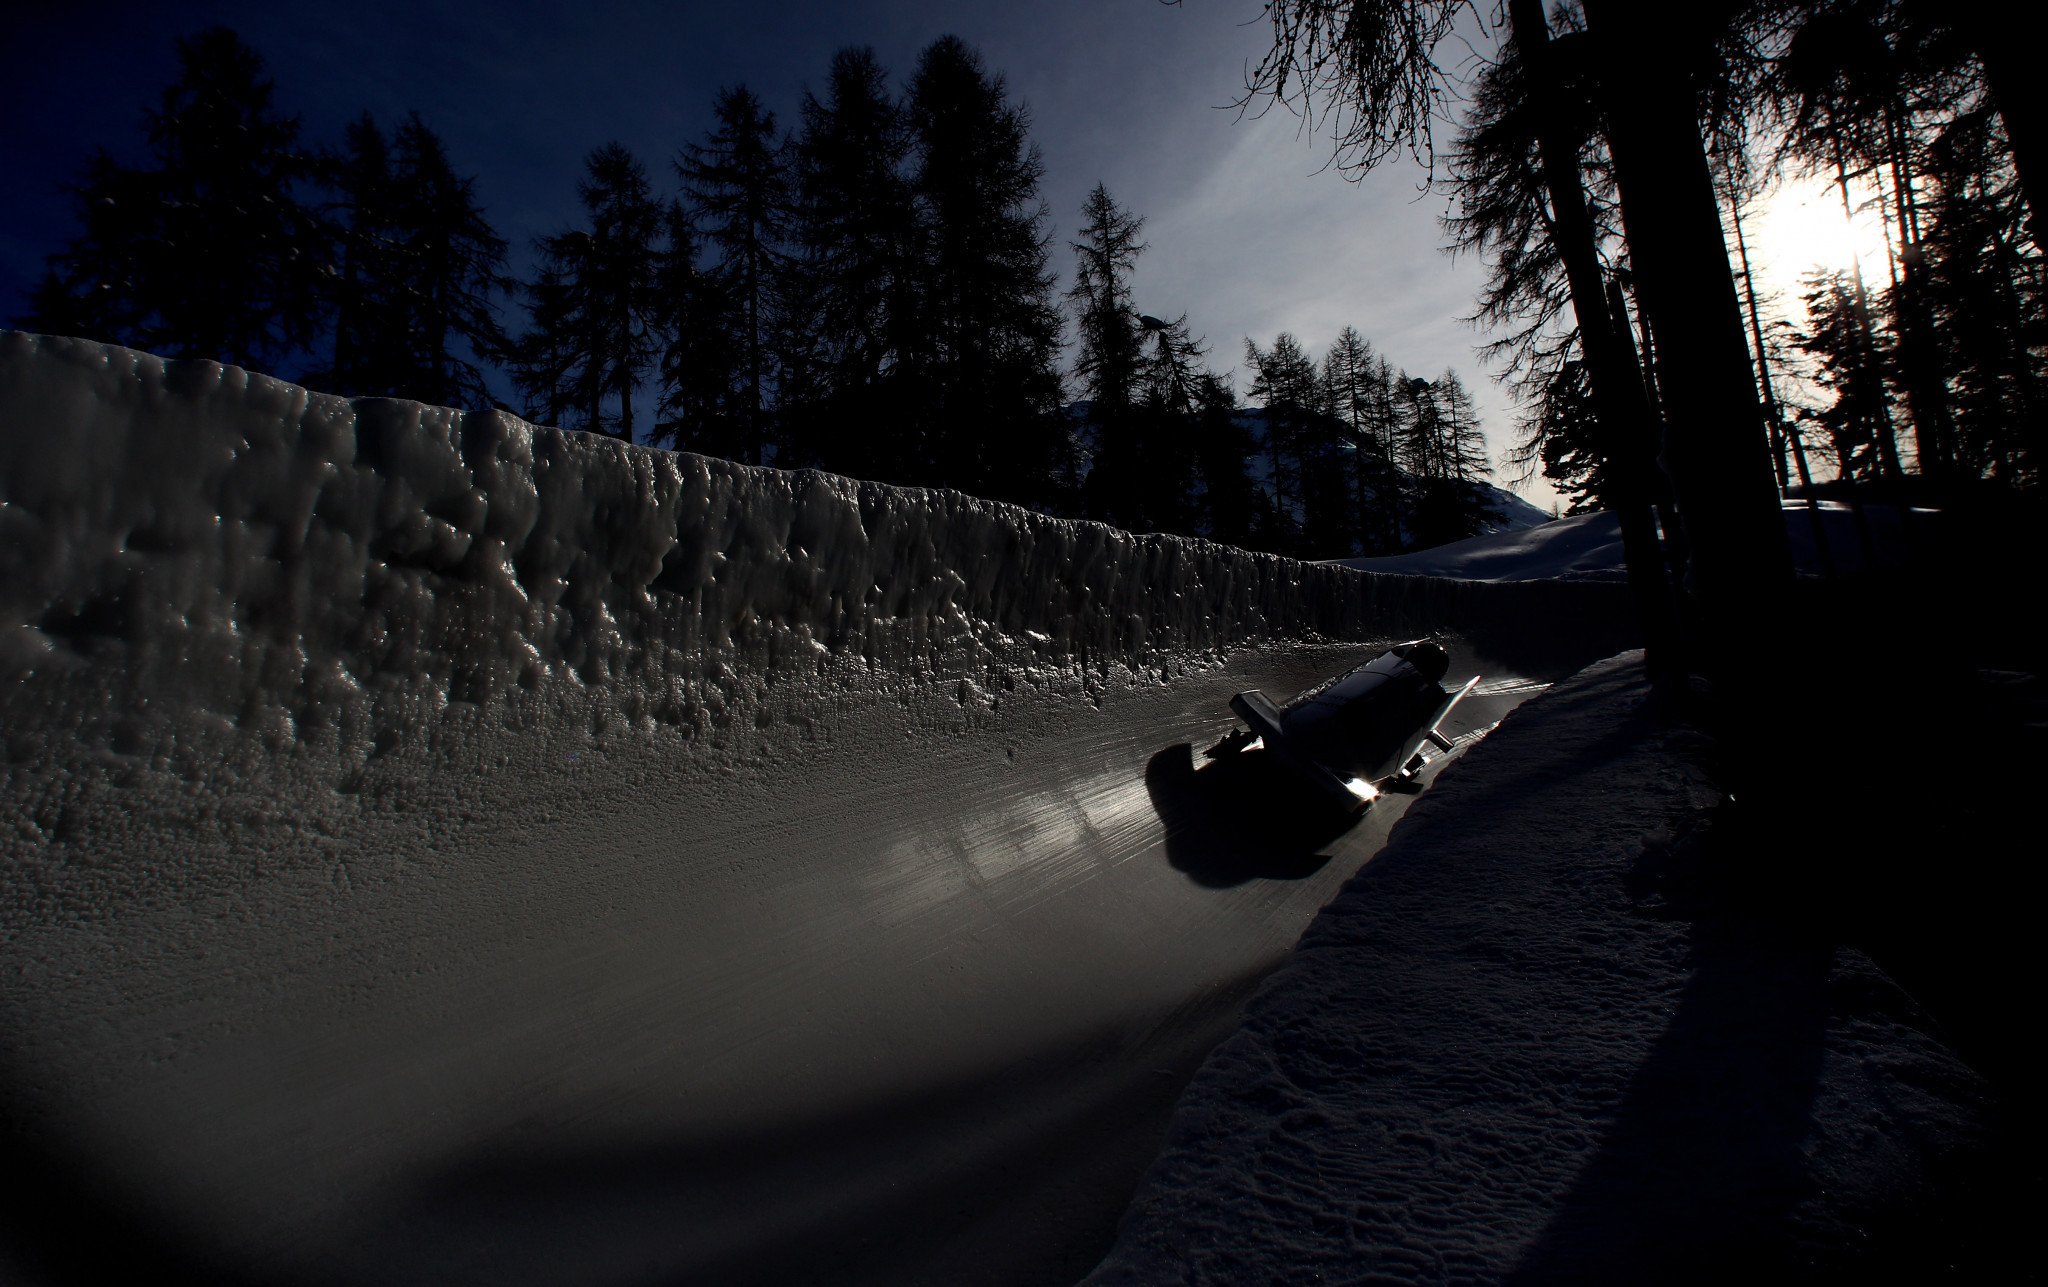 St Moritz's iconic natural ice track will host the last event of the season ©Getty Images